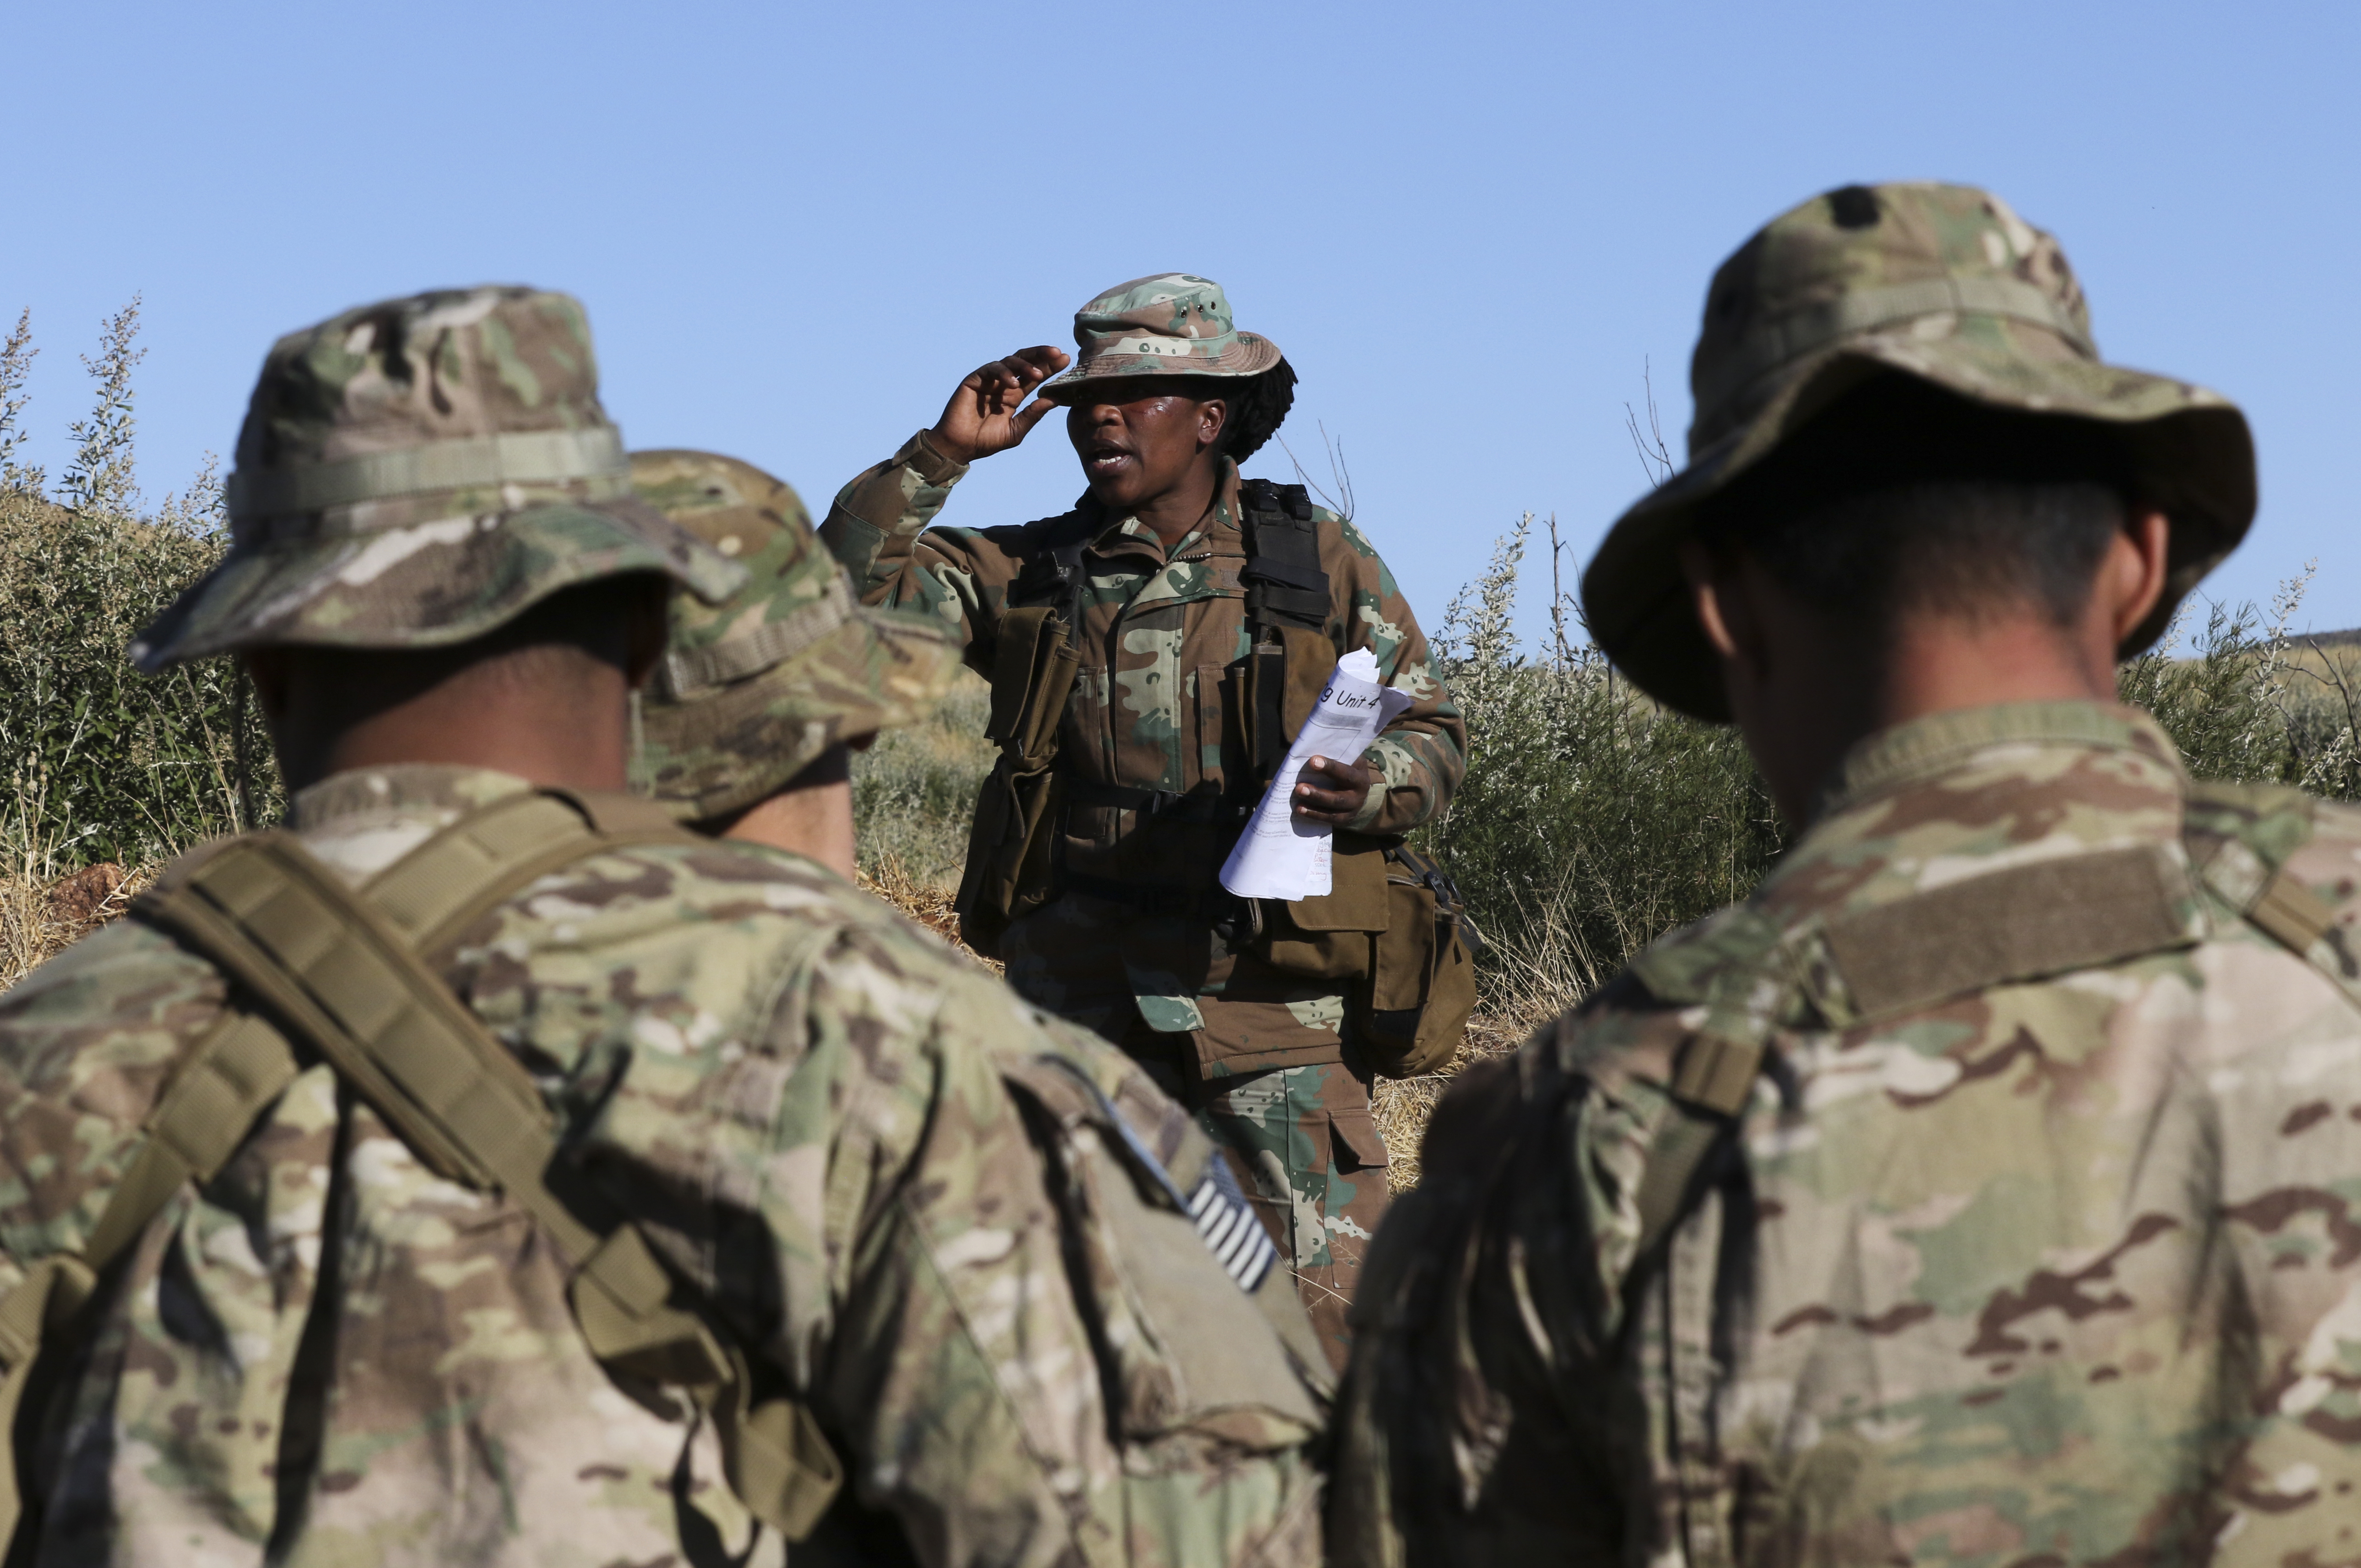 A member of the South African National Defense Force instructs U.S. Marines from 3rd Battalion, 25th Marine Regiment and South African troops from the South African Navy, Maritime Reaction Squadron in bush terrain survival July 19, 2017, during Exercise Shared Accord 2017 at the South African Army Combat Training Center in Lohatla, South Africa. (U.S. Army photo by Sgt. 1st Class Alexandra Hays, 79th Sustainment Command (Support).